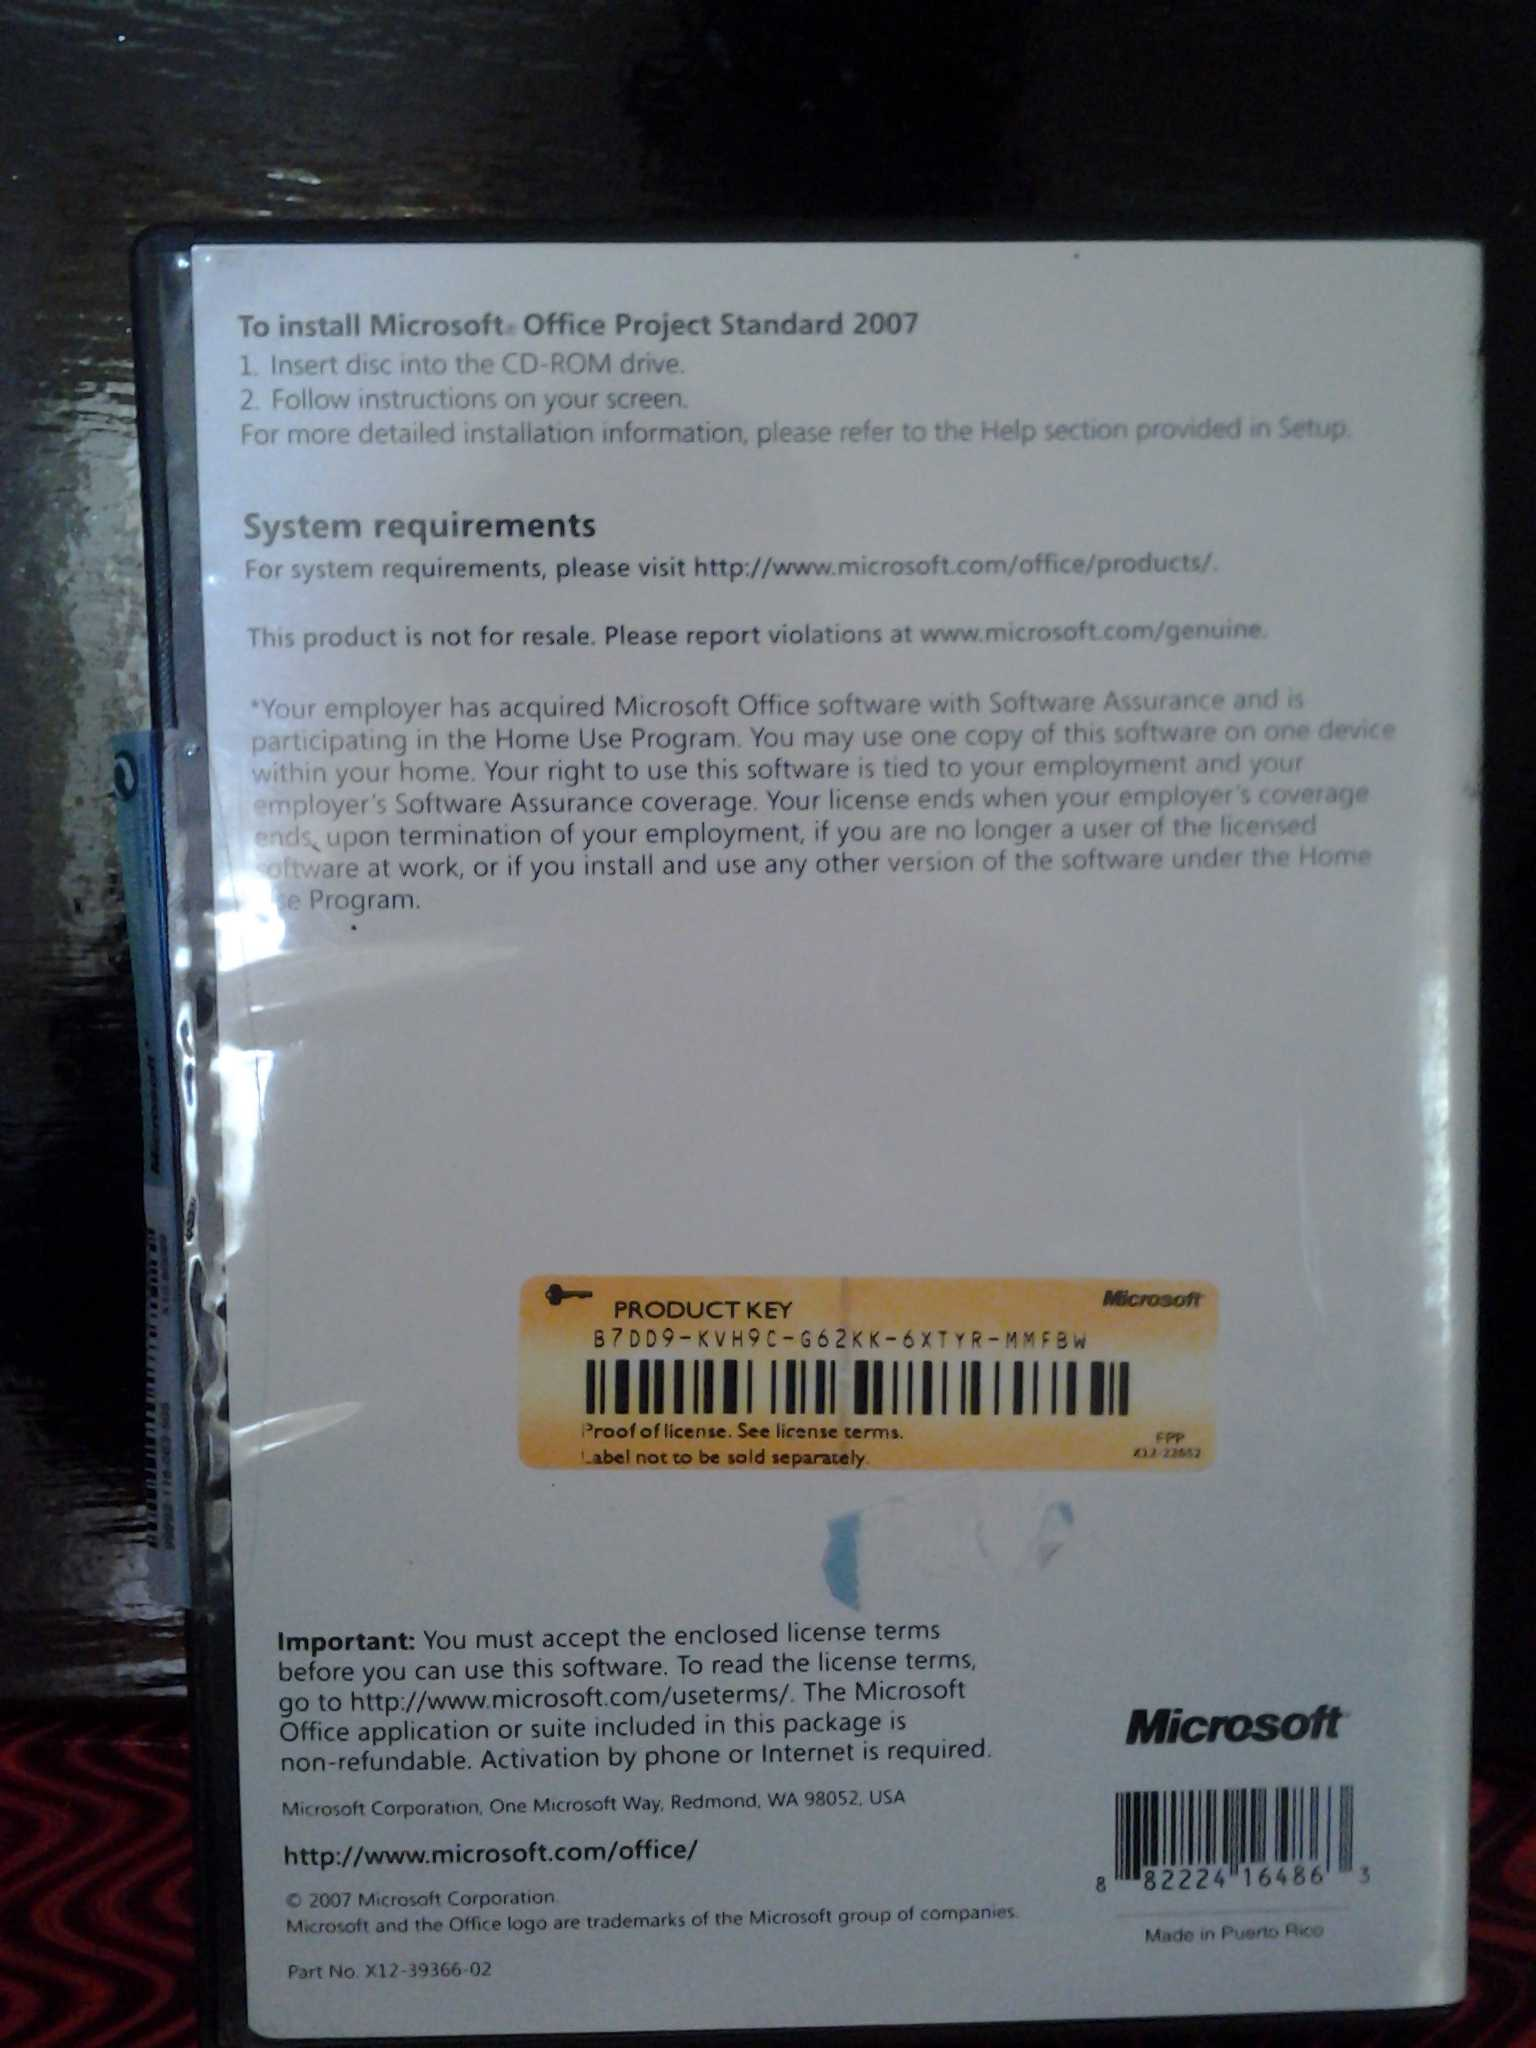 Microsoft Office Project Standard 2007 Open Valid Product